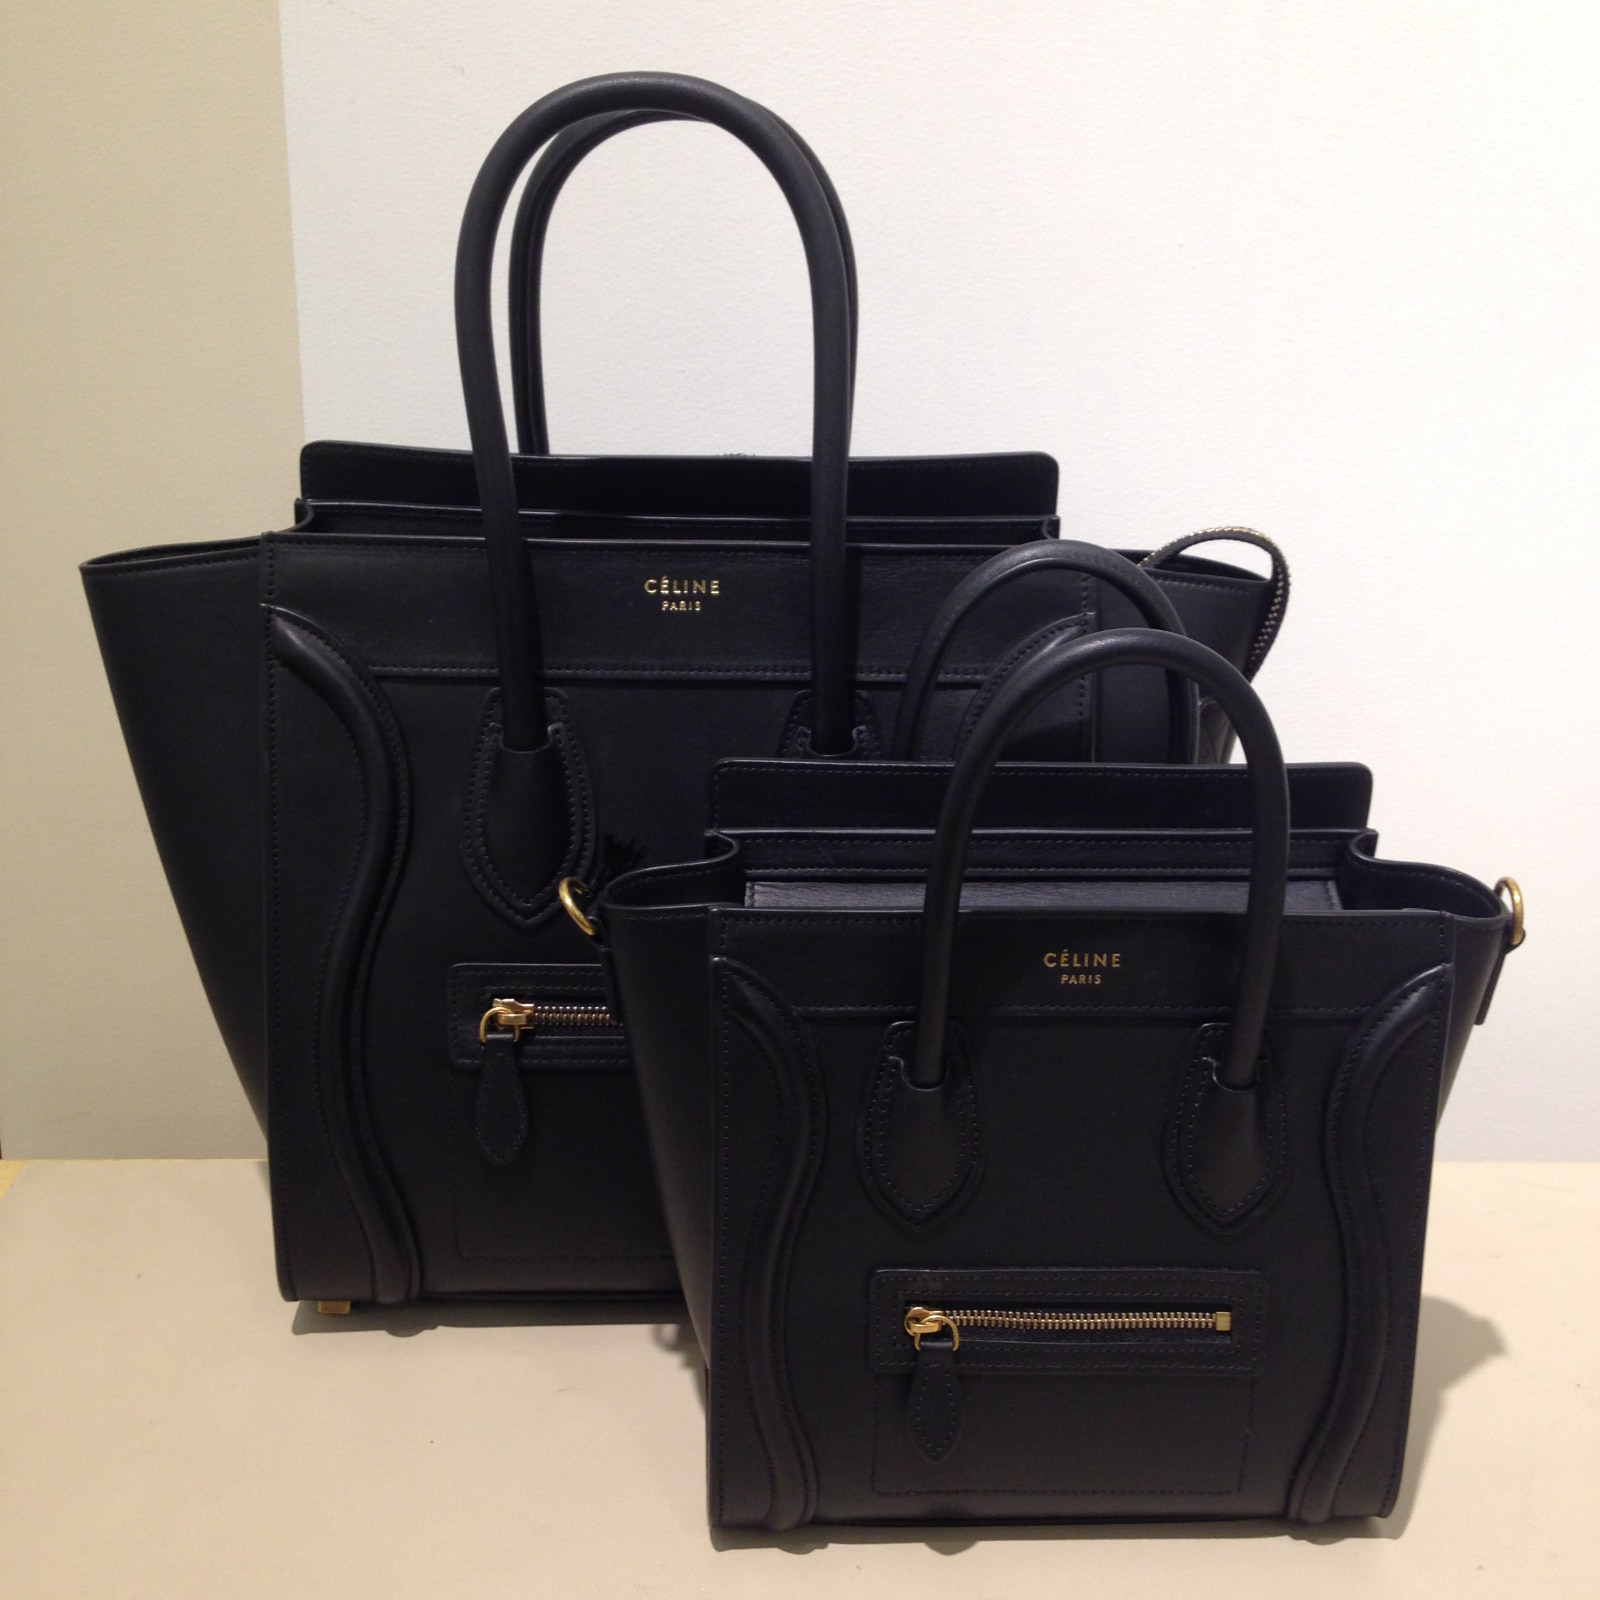 price of celine luggage bag - Celine Nano Luggage Tote Bag Reference Guide | Spotted Fashion